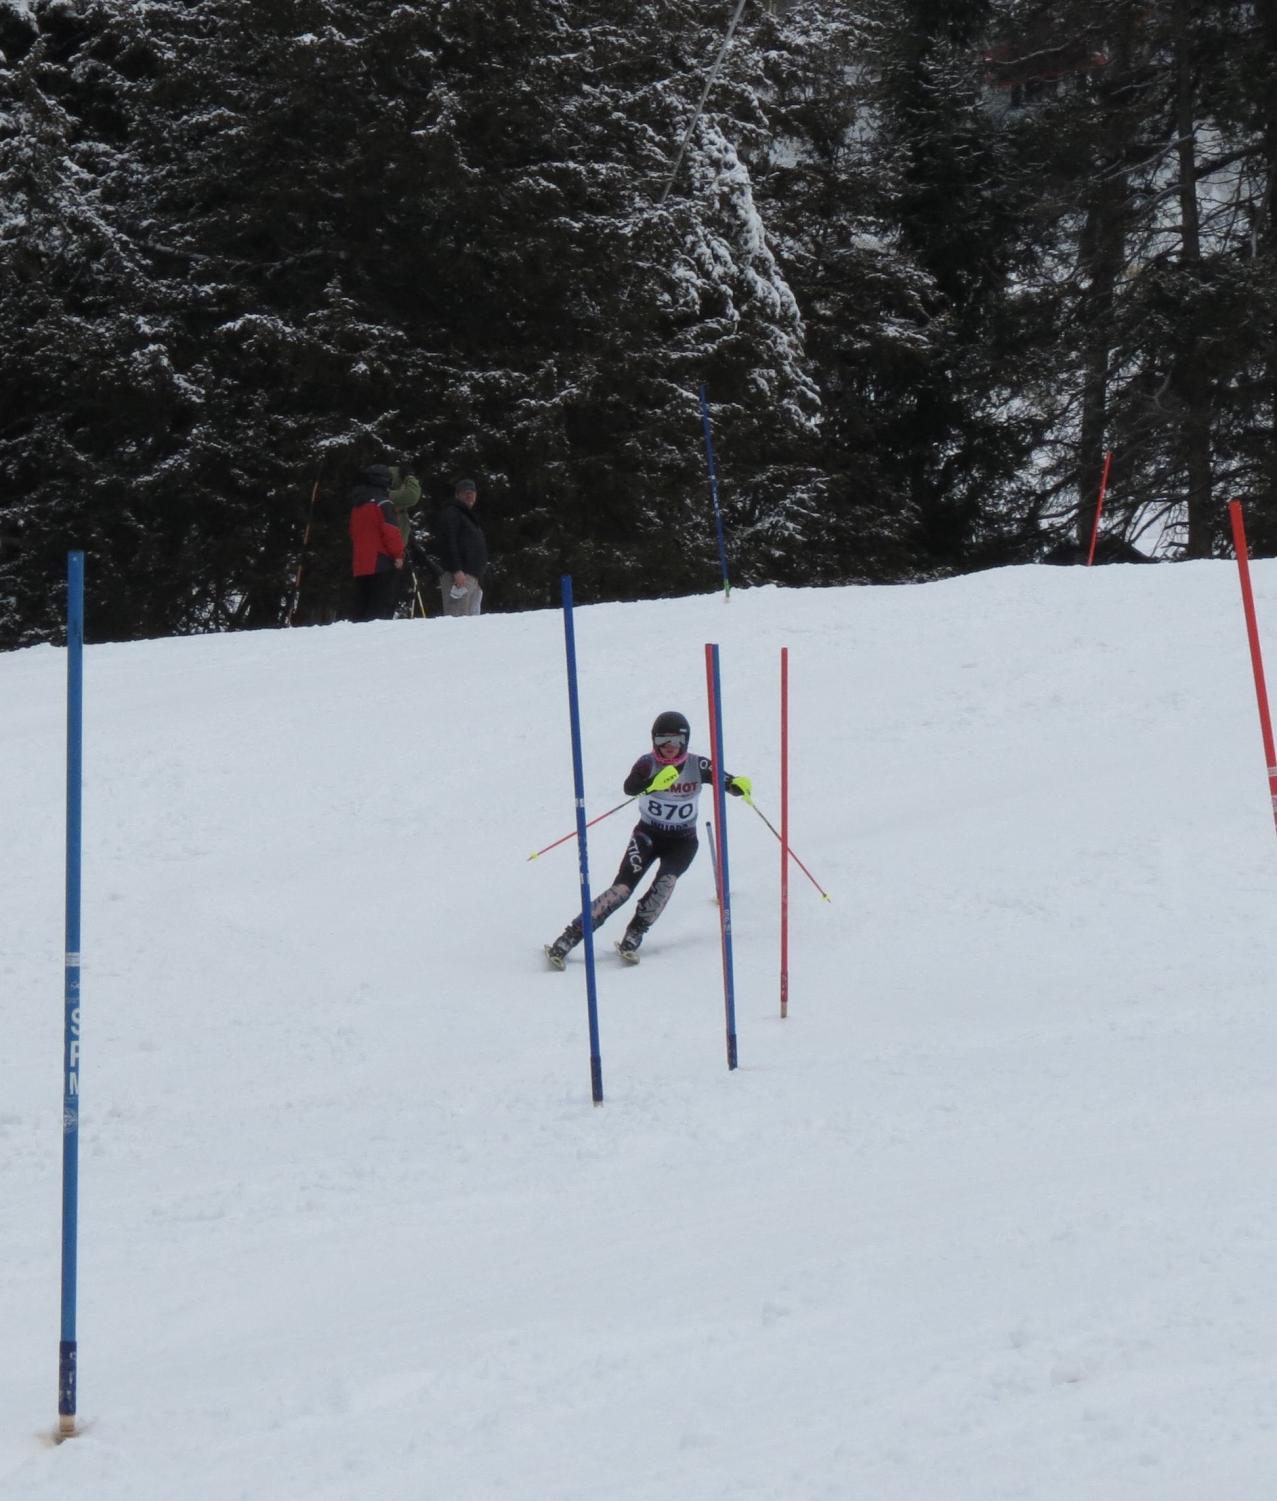 Kraus competes in the second slalom race at Sundown Mountain in Dubuque, Iowa. Slalom skiing is a technical event in alpine ski racing that involves skiing between sets of poles or gates.